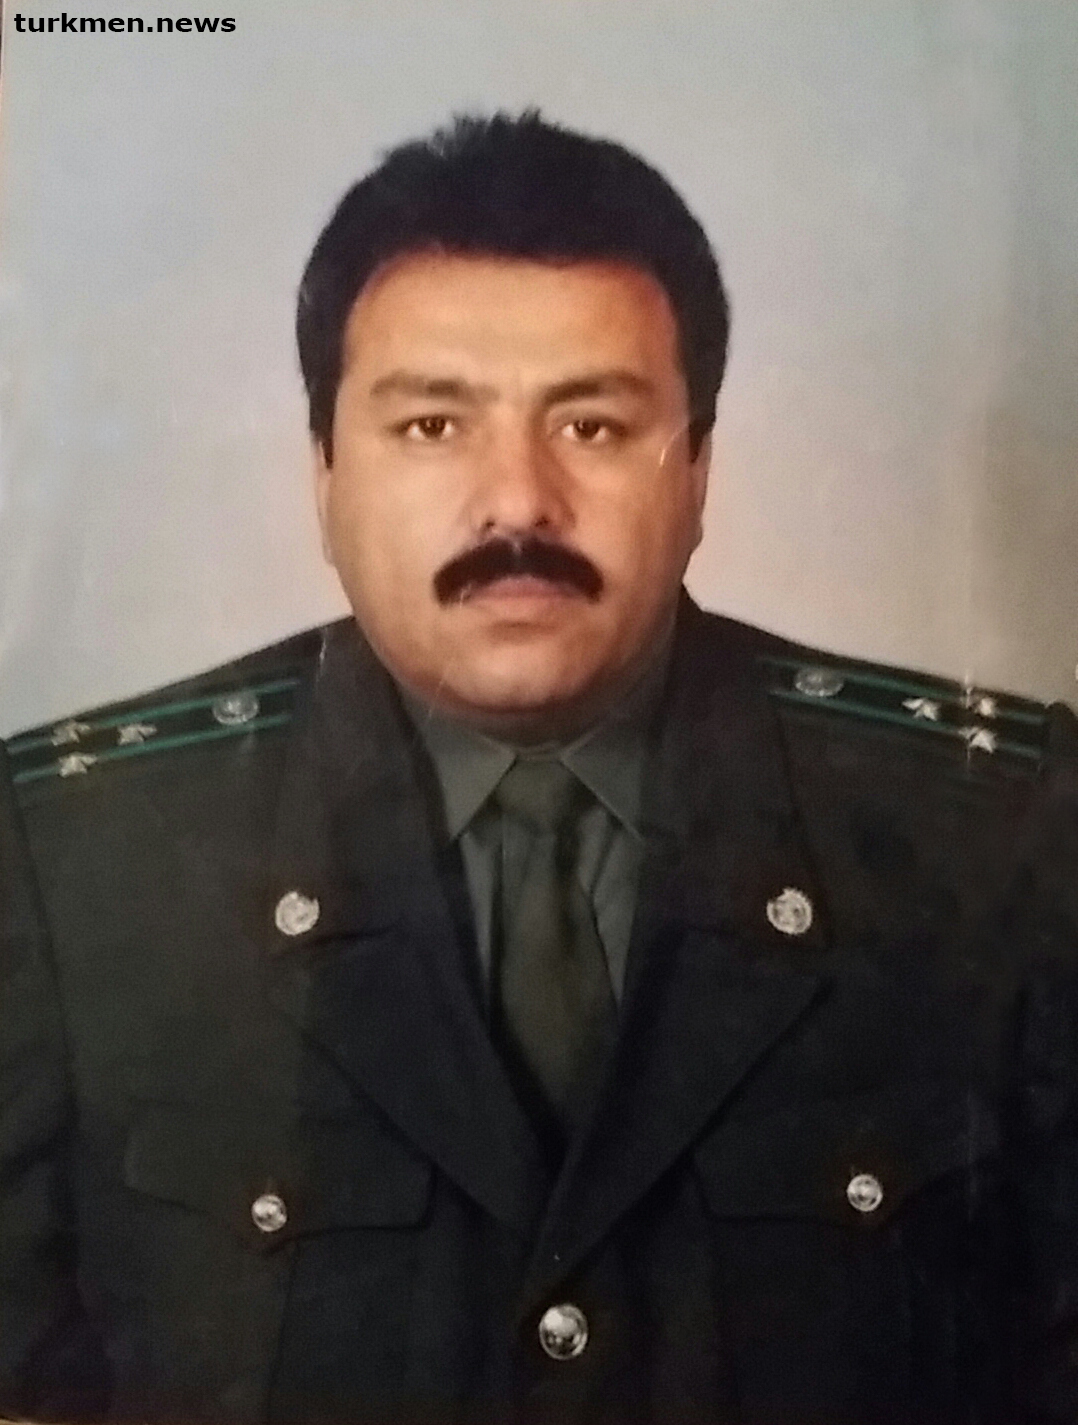 Former Secret Service Official Dies in Isolation in Turkmen Prison